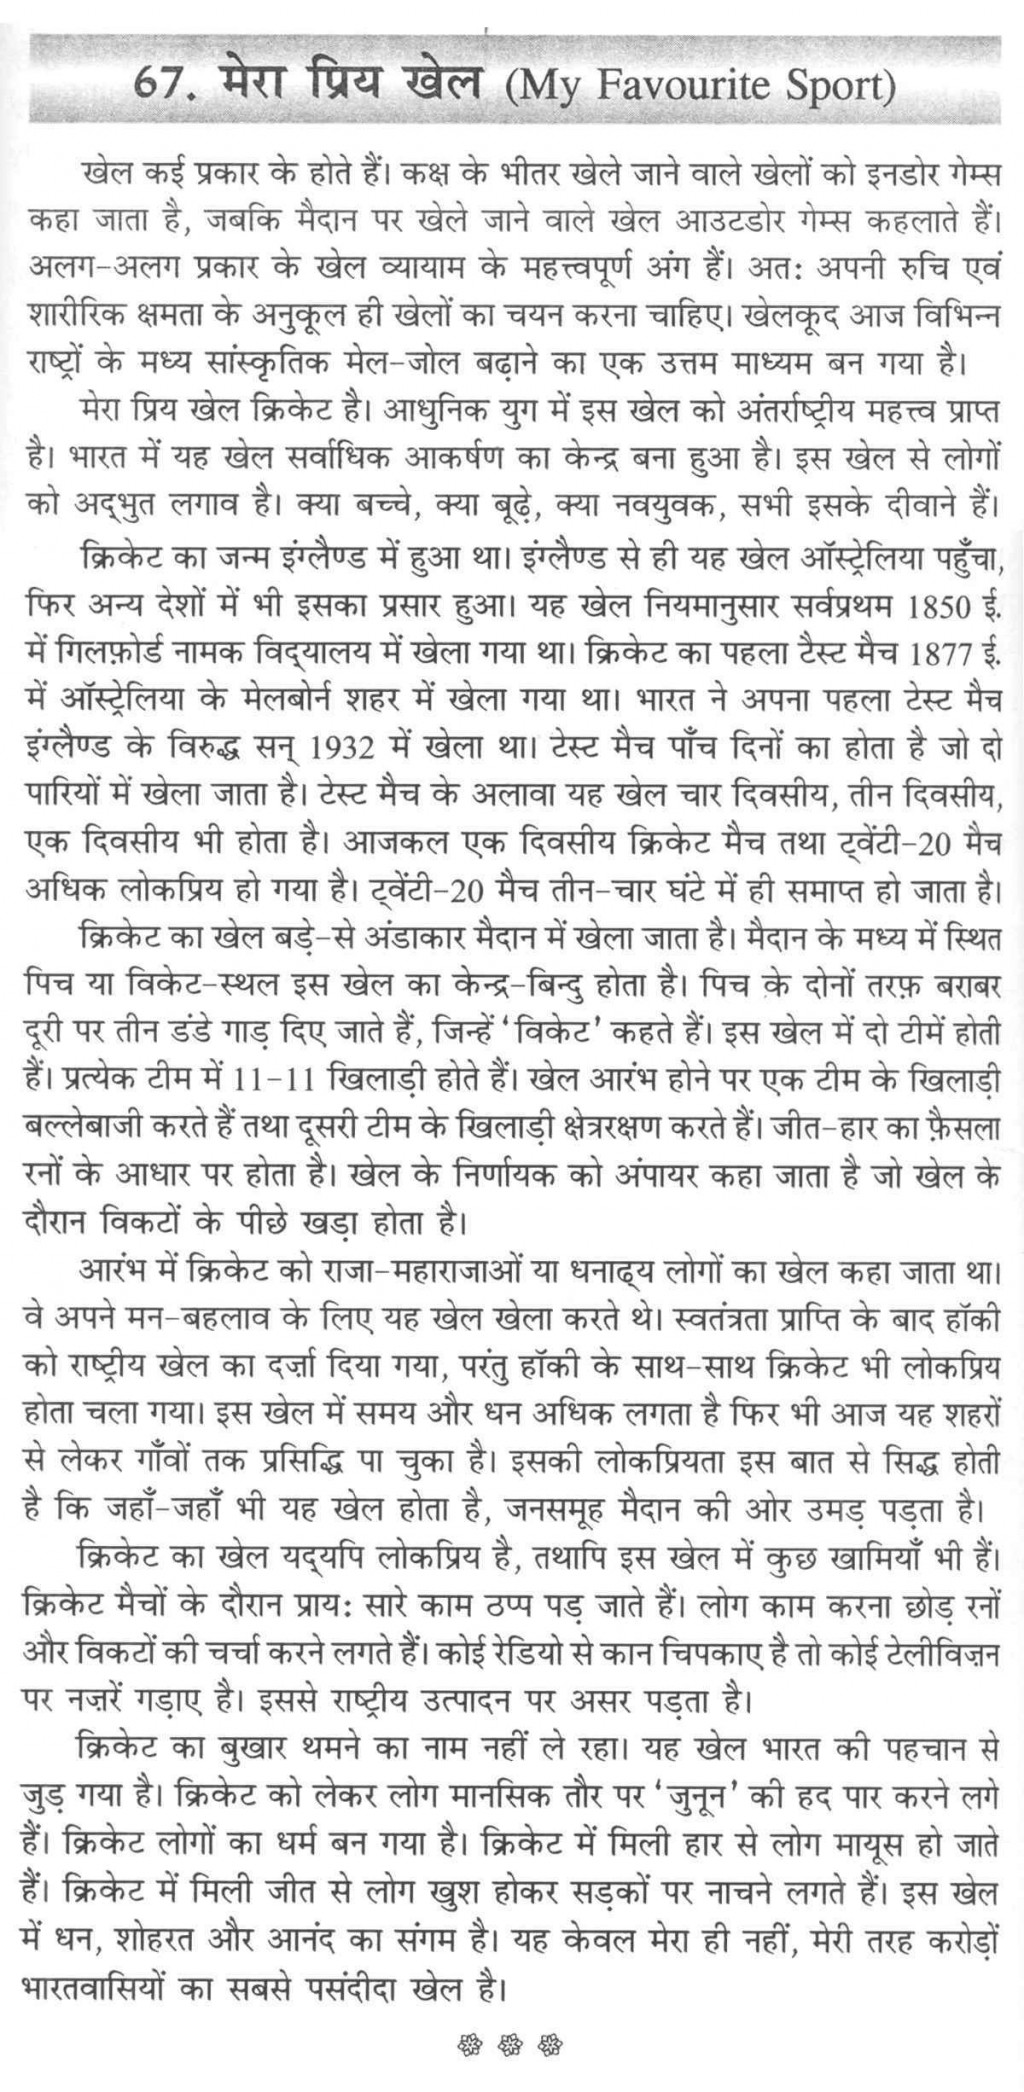 013 Essay Example Aa67 Thumb On Ipl In Impressive Hindi 2017 Cricket Match Large